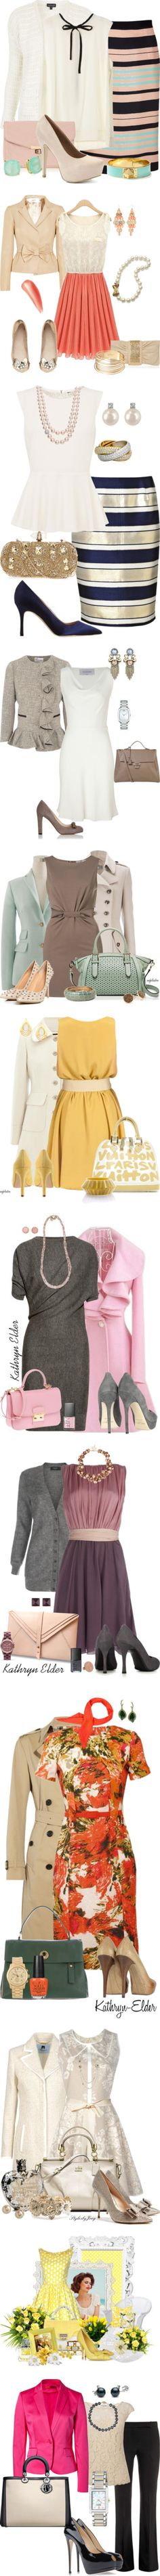 """Classy Luncheon"" by cynthia-henriquez on Polyvore"